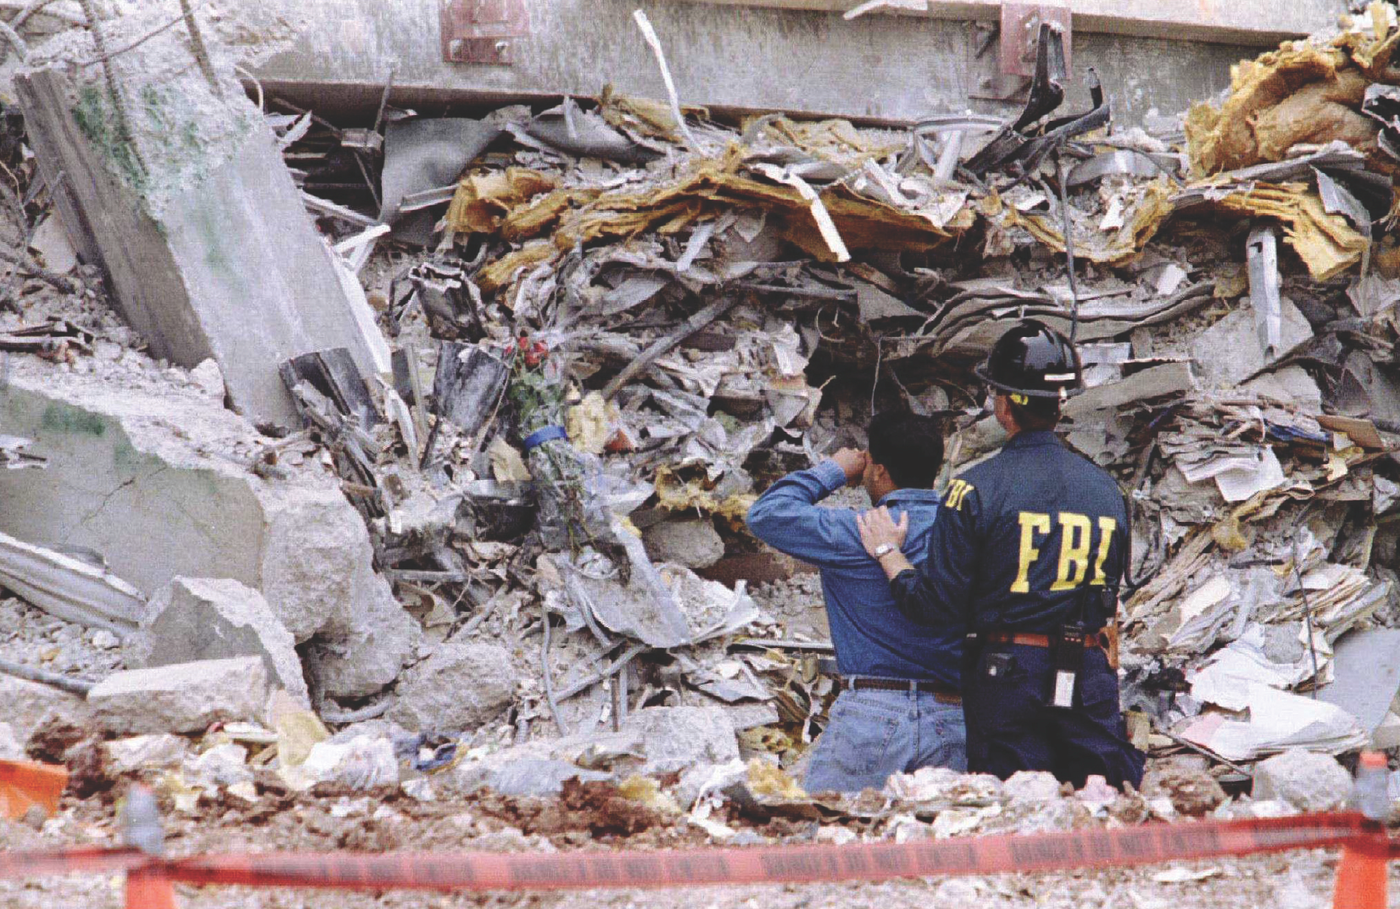 An FBI agent comforts a man who lost a loved one in the April 1995 Oklahoma City Bombing. Rueters photo.